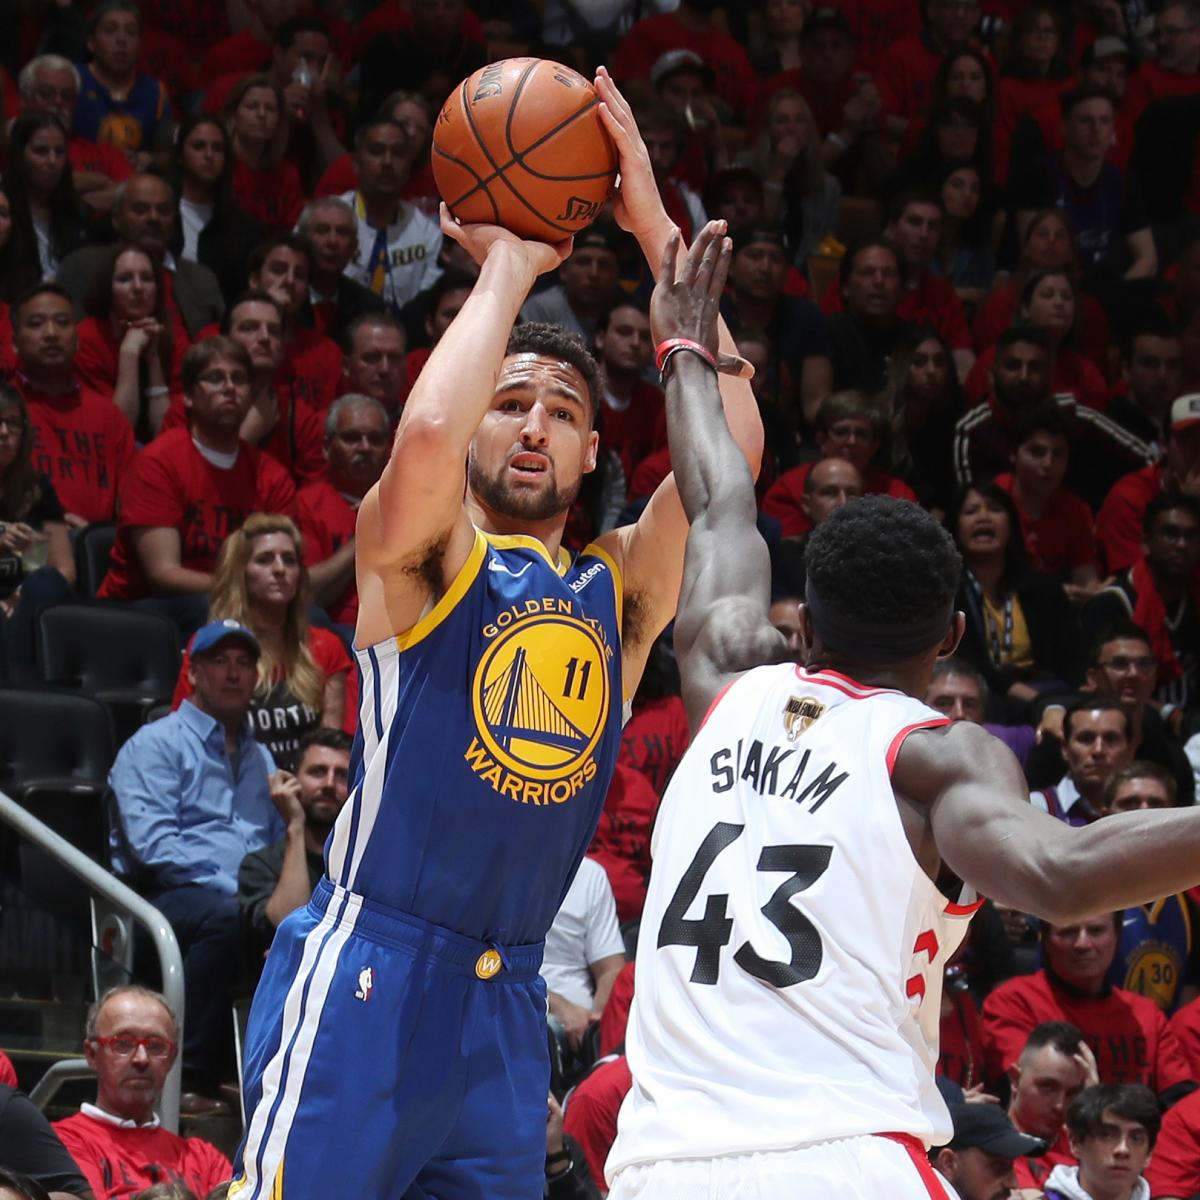 Warriors Come Out To Play Bleacher Report: Warriors' Klay Thompson Suffers Hamstring Injury; Expects